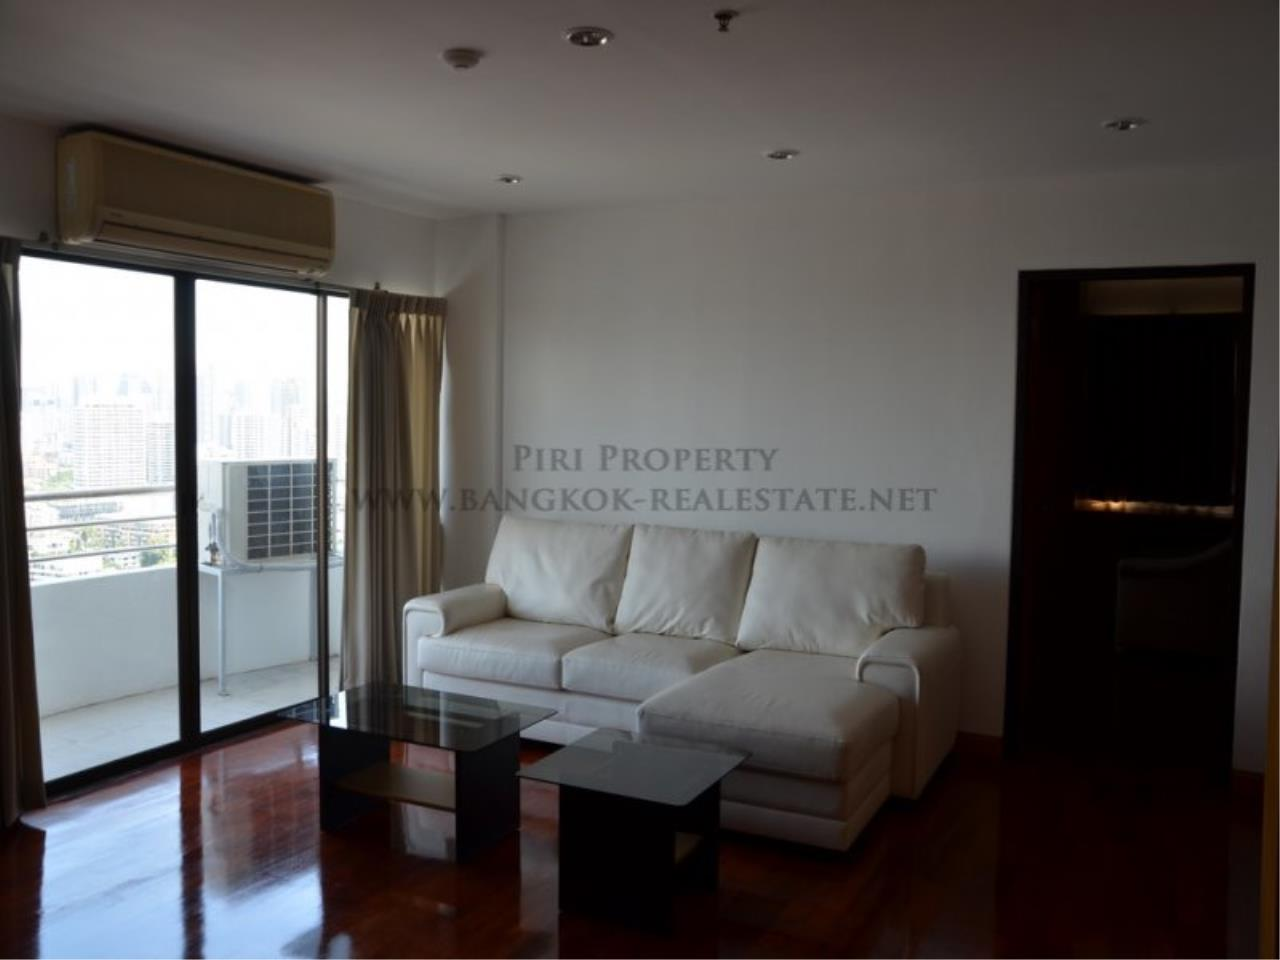 Piri Property Agency's Spacious 3 Bedroom Condo in Ekkamai - 128 SQM for 50K - Top View Tower - 30th Floor 3